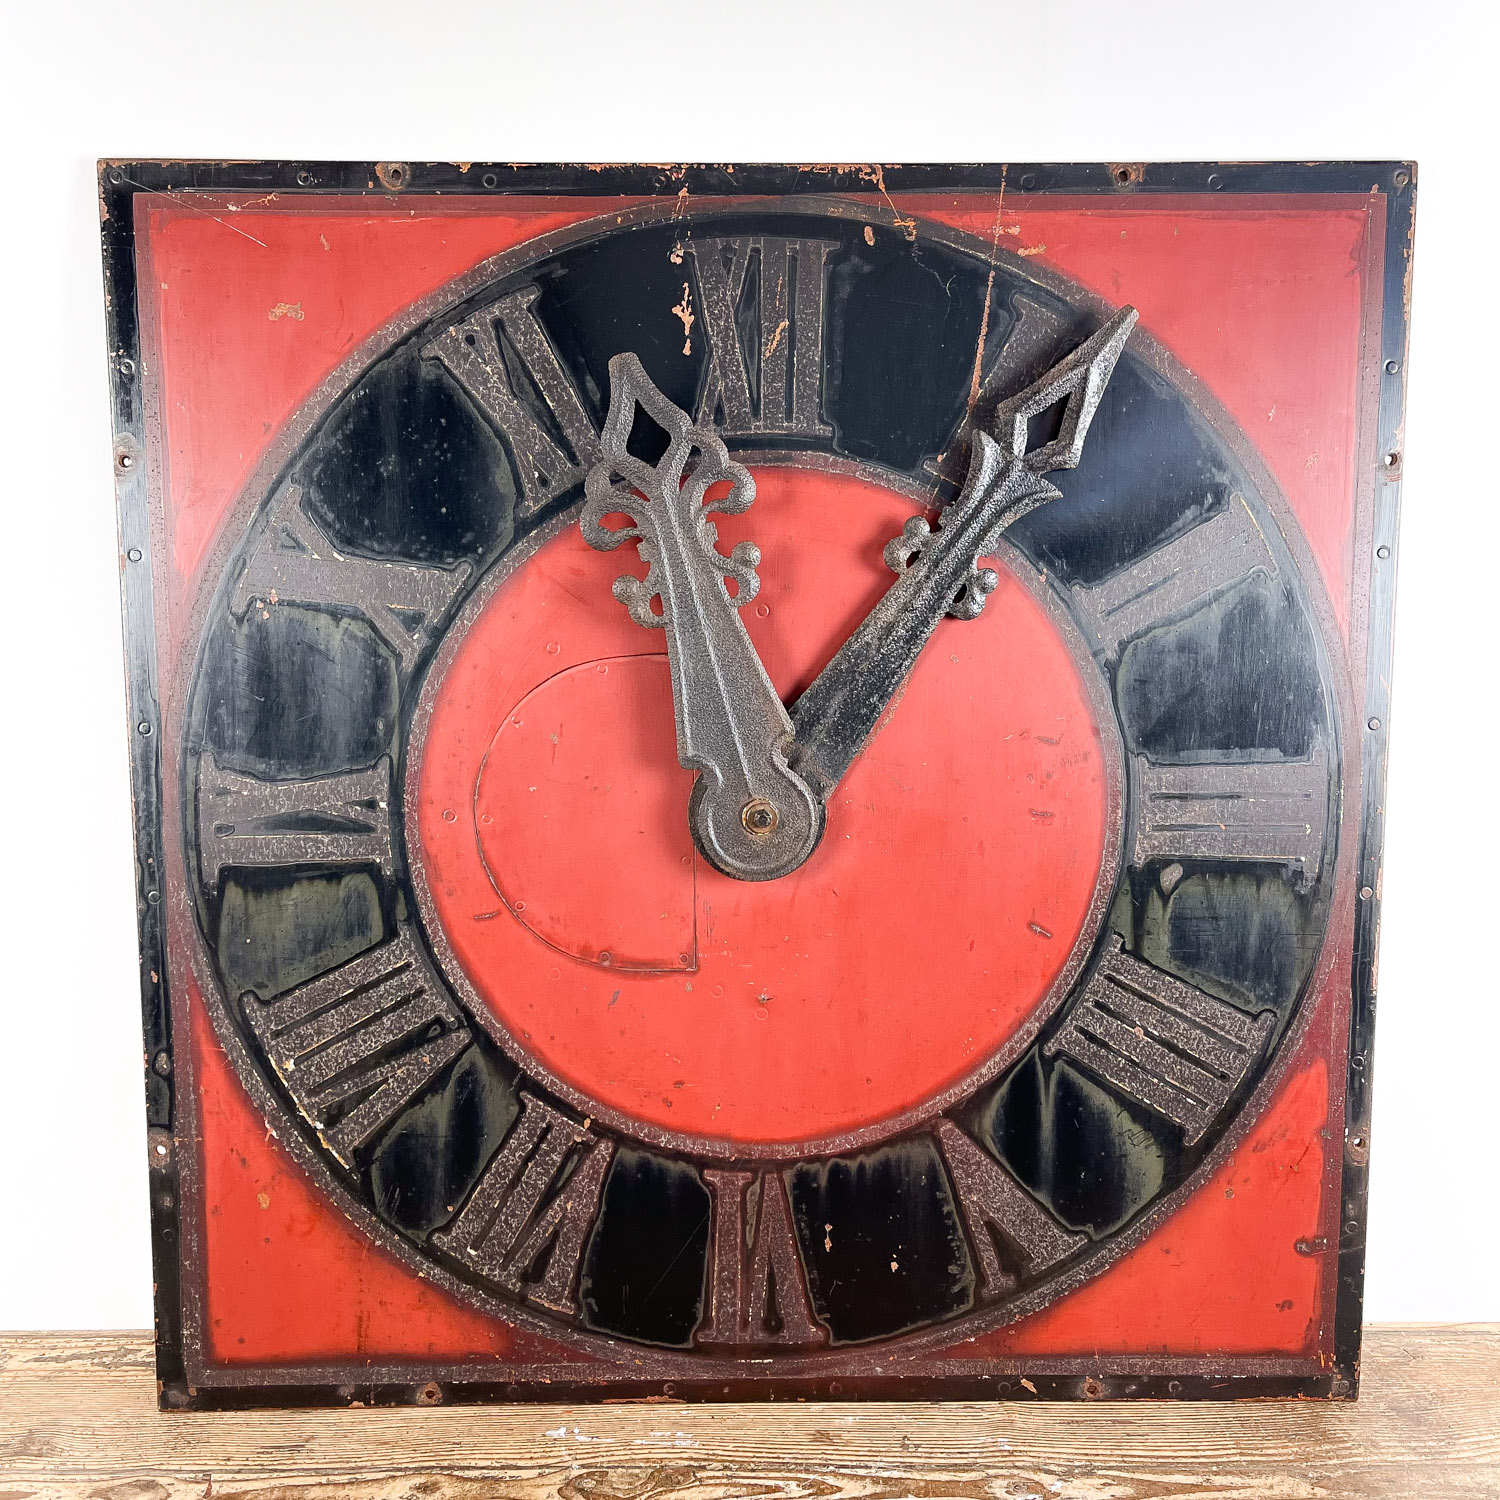 Vintage industrial metal church clock face